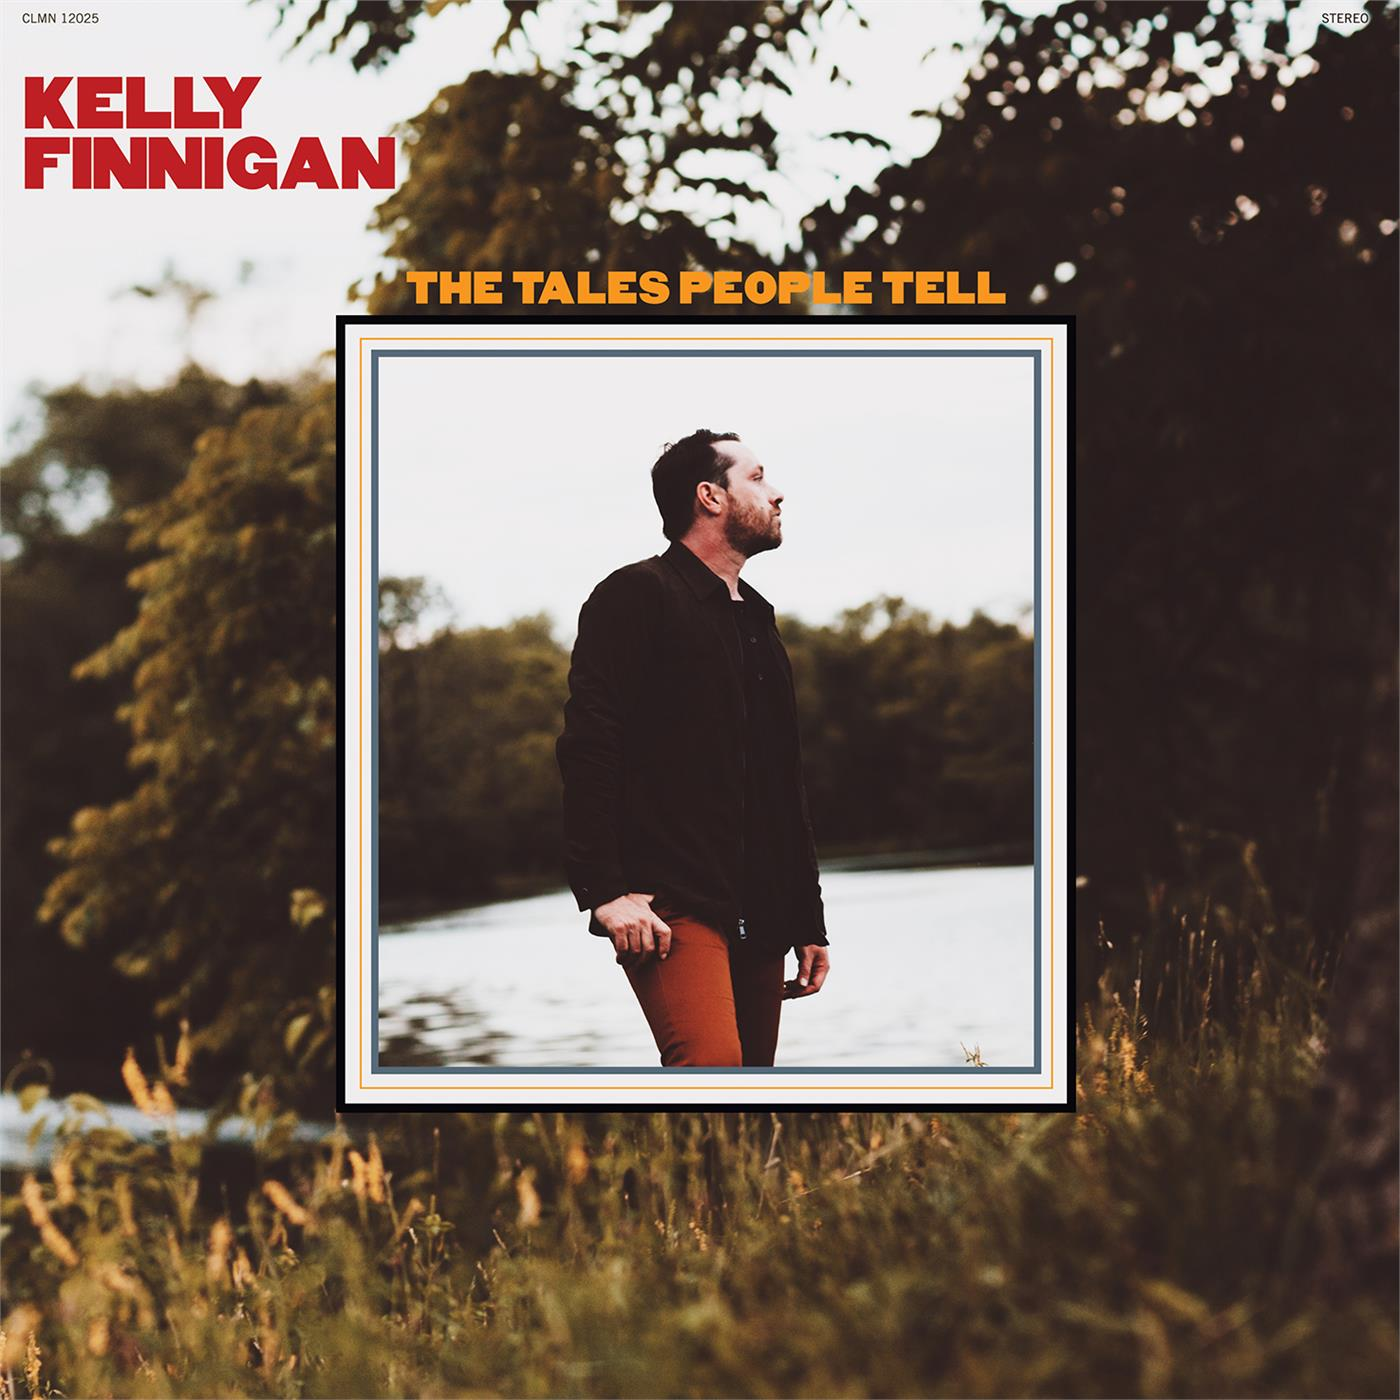 CLMN12025LP Colemine  Kelly Finnigan The Tales People Tell (LP)